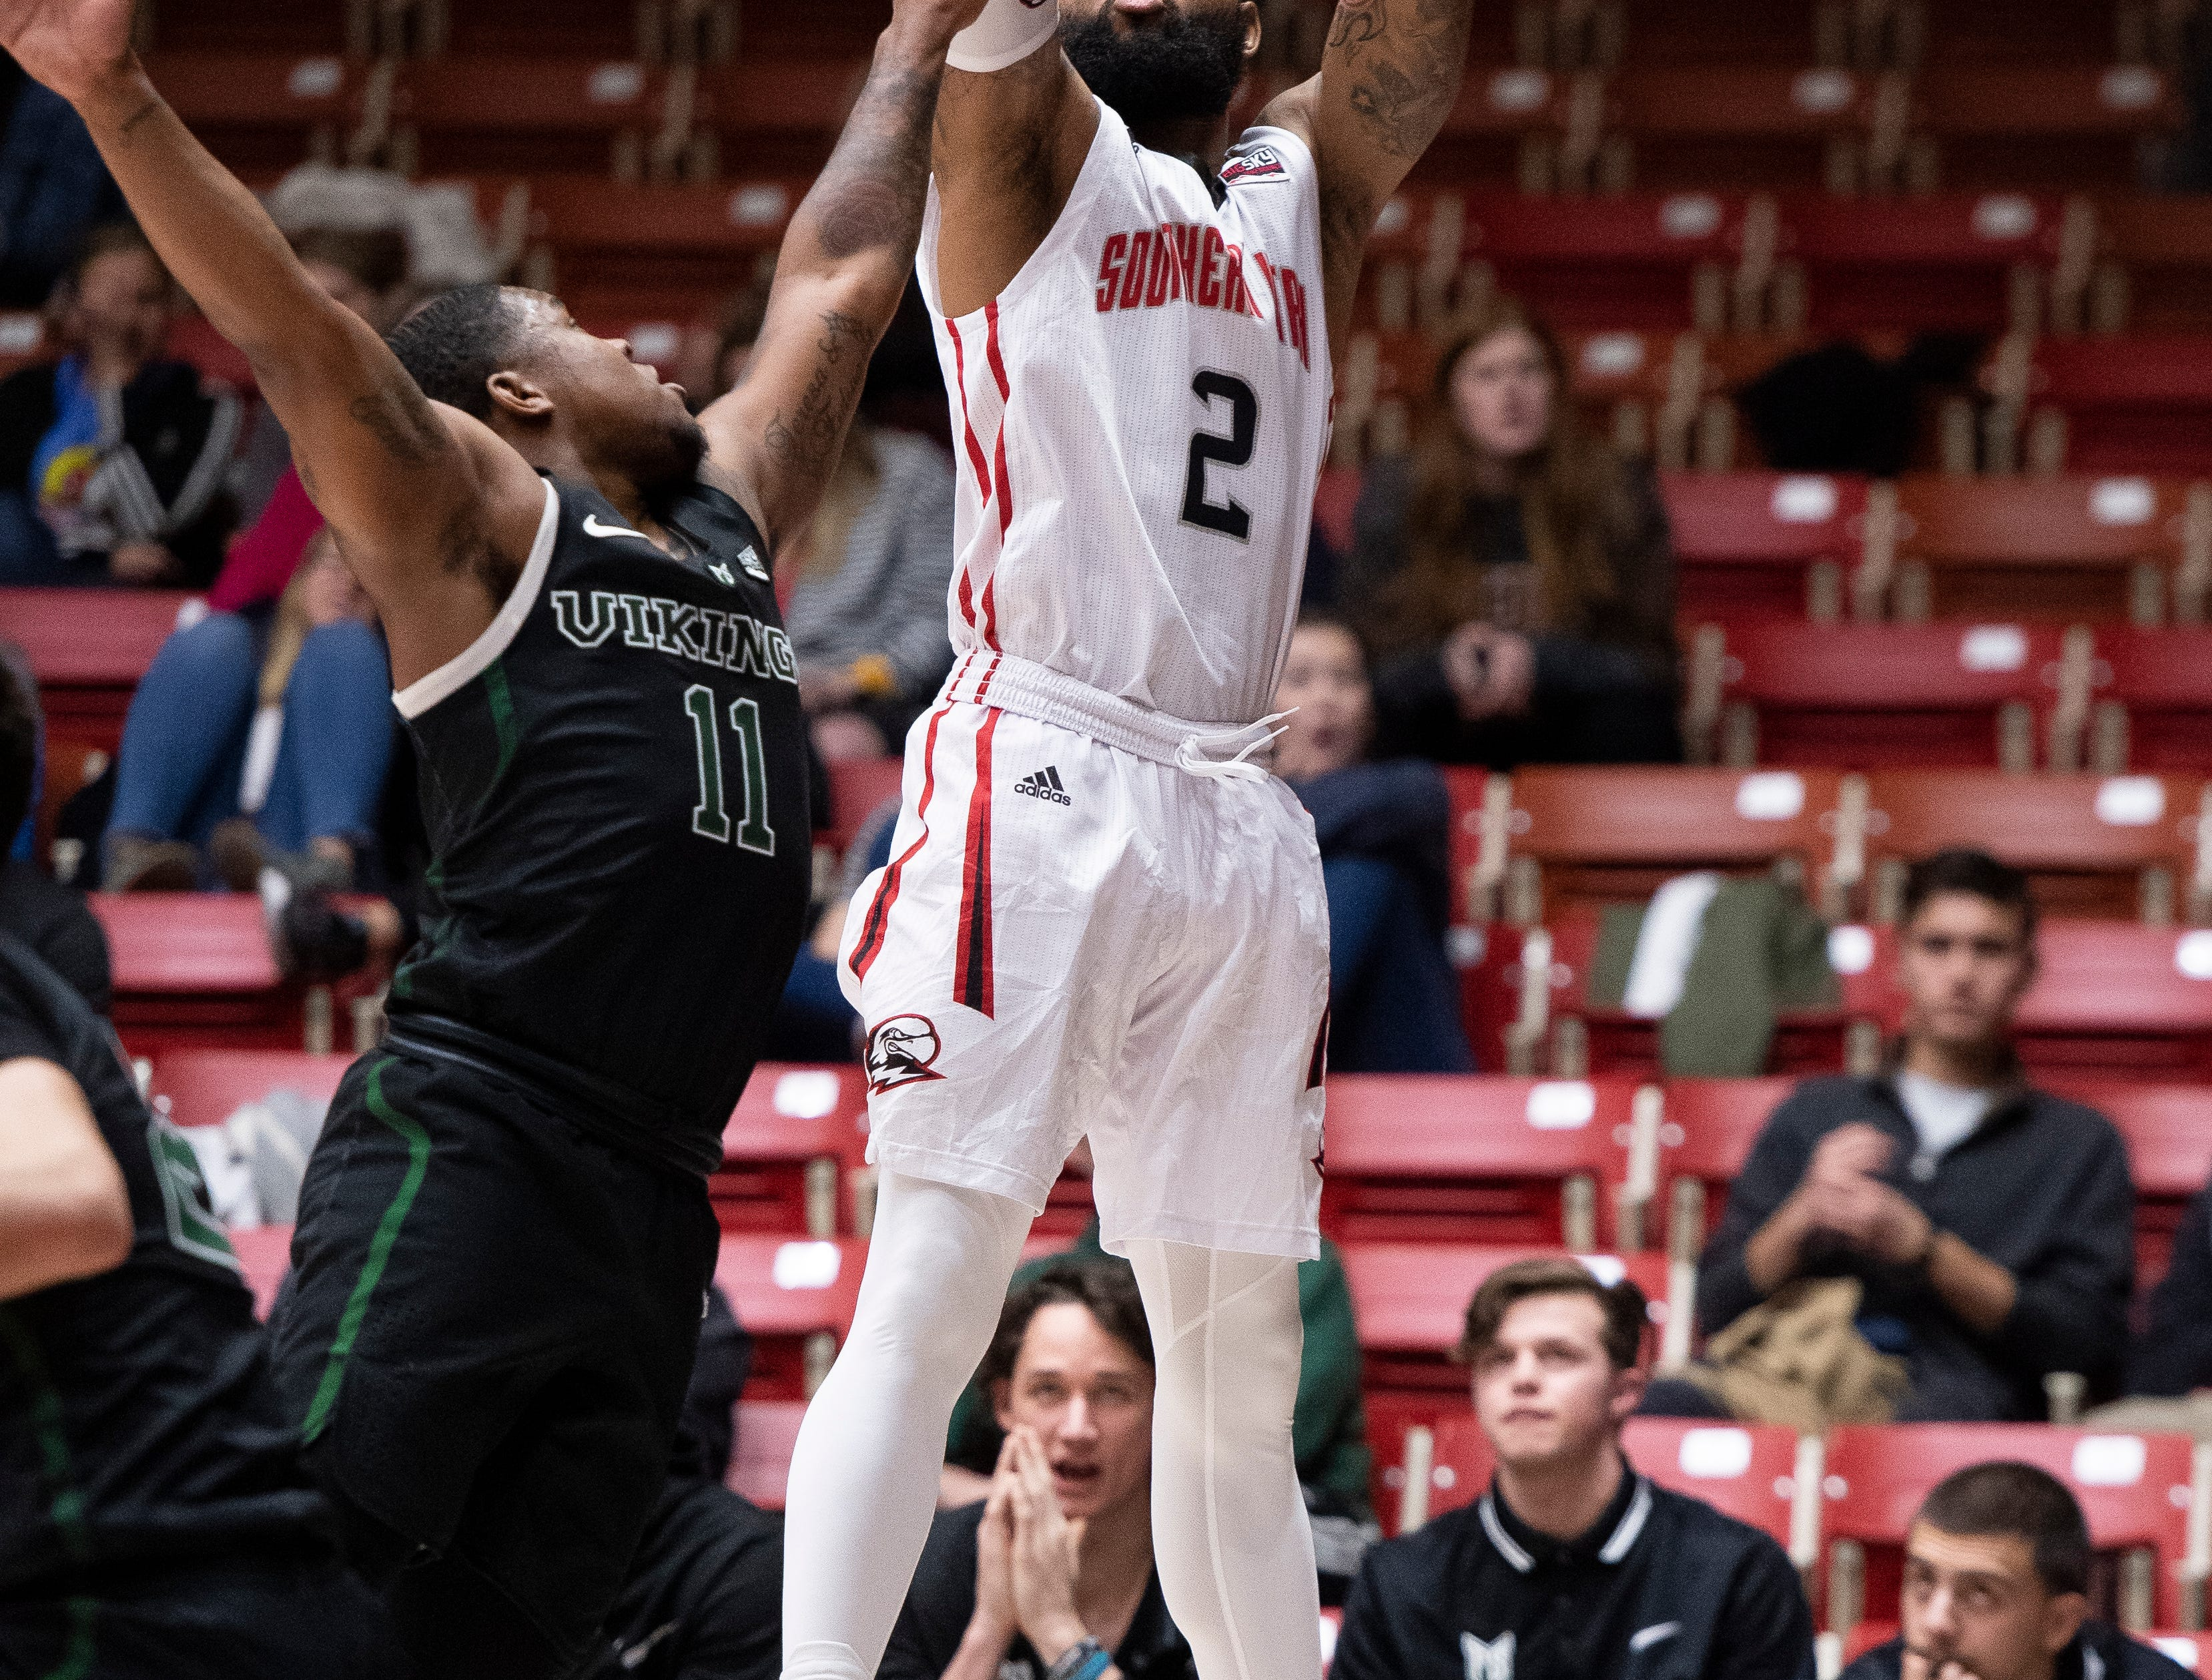 Southern Utah University senior Brandon Better (2) jumps high to sink a three-point basket against Portland State in the America First Event Center Thursday, January 17, 2019. SUU won, 83-69.